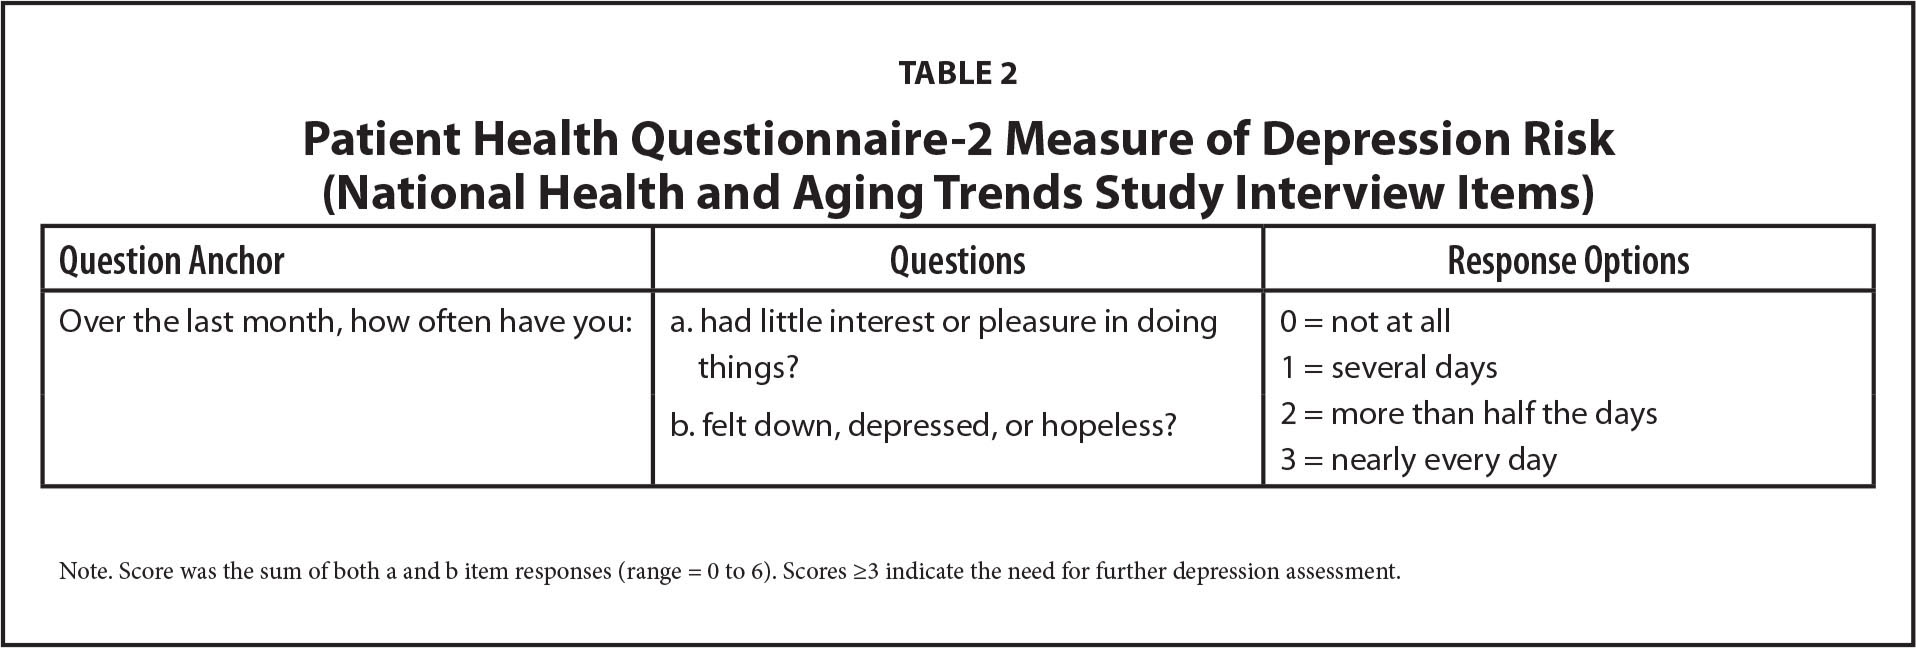 Patient Health Questionnaire-2 Measure of Depression Risk (National Health and Aging Trends Study Interview Items)